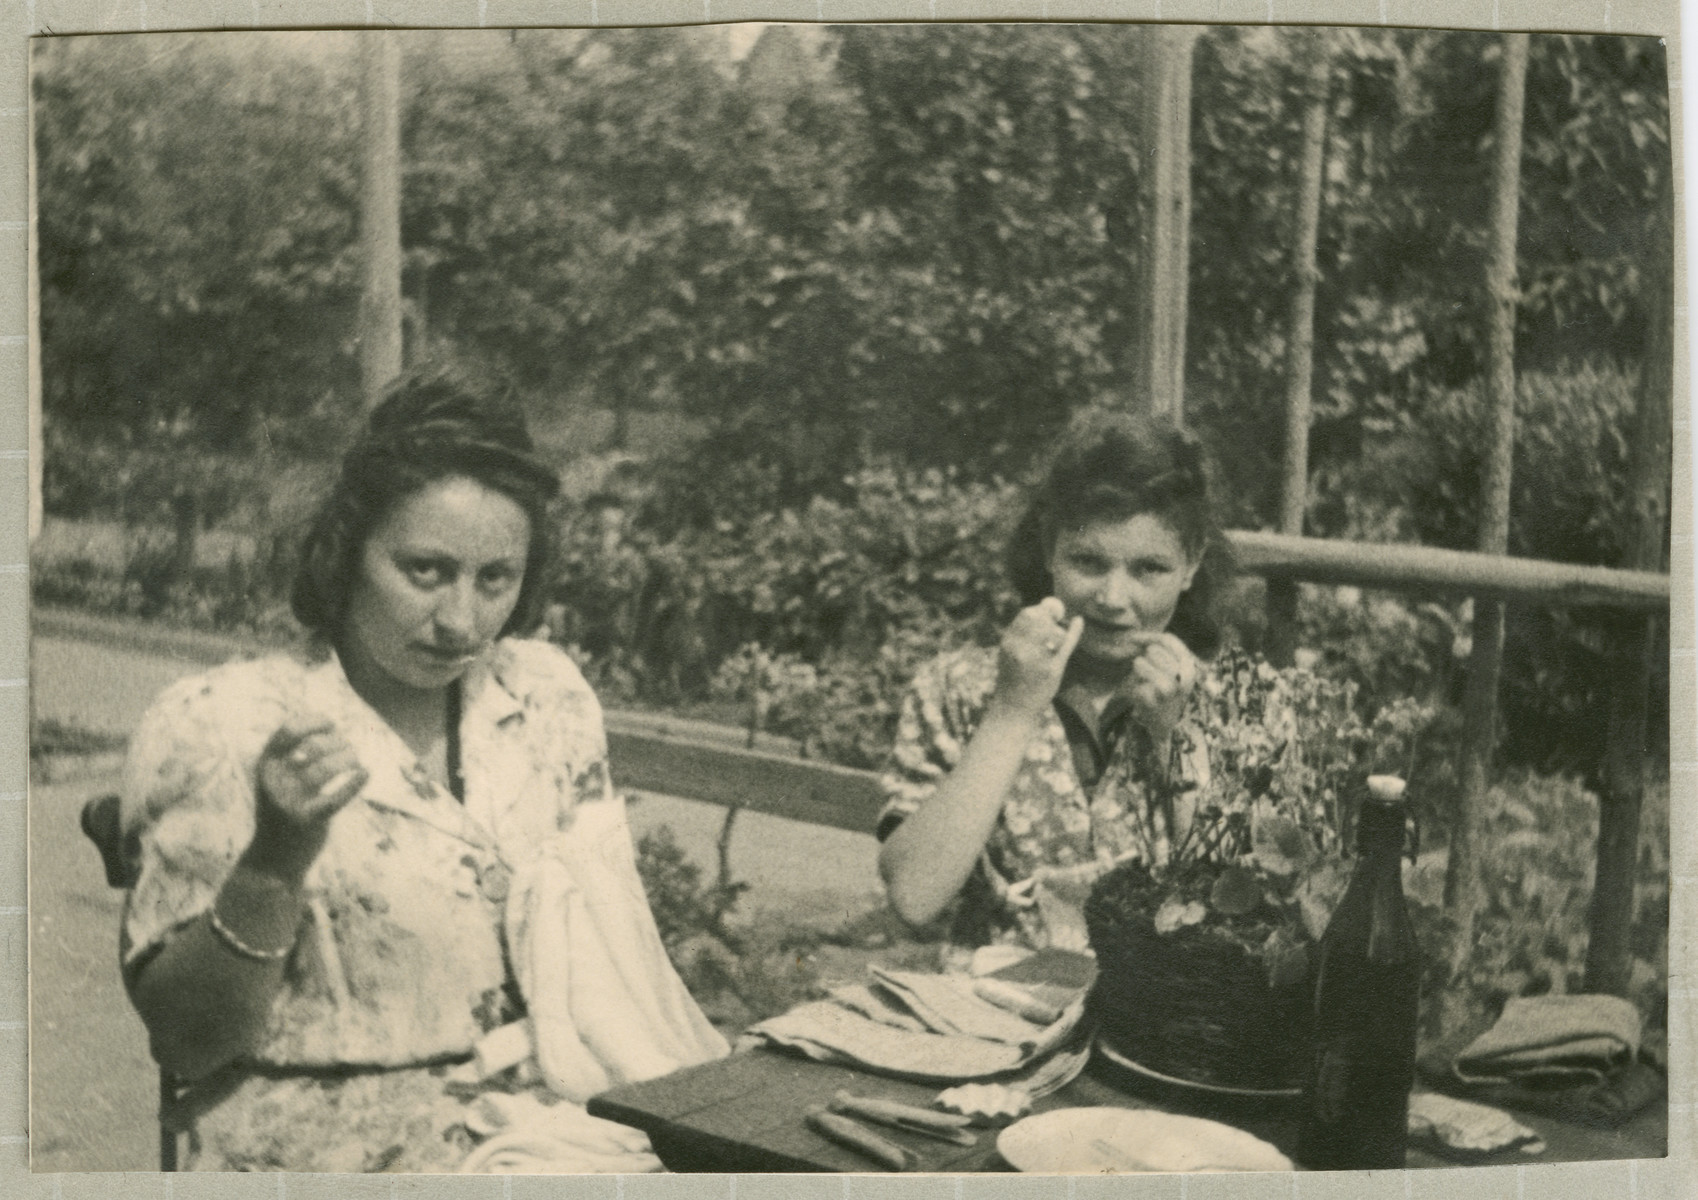 Hanna Bratman and her sister-in-law Hanka Bratman Fisch sit outside and sew in the Lampertheim displaced persons camp.